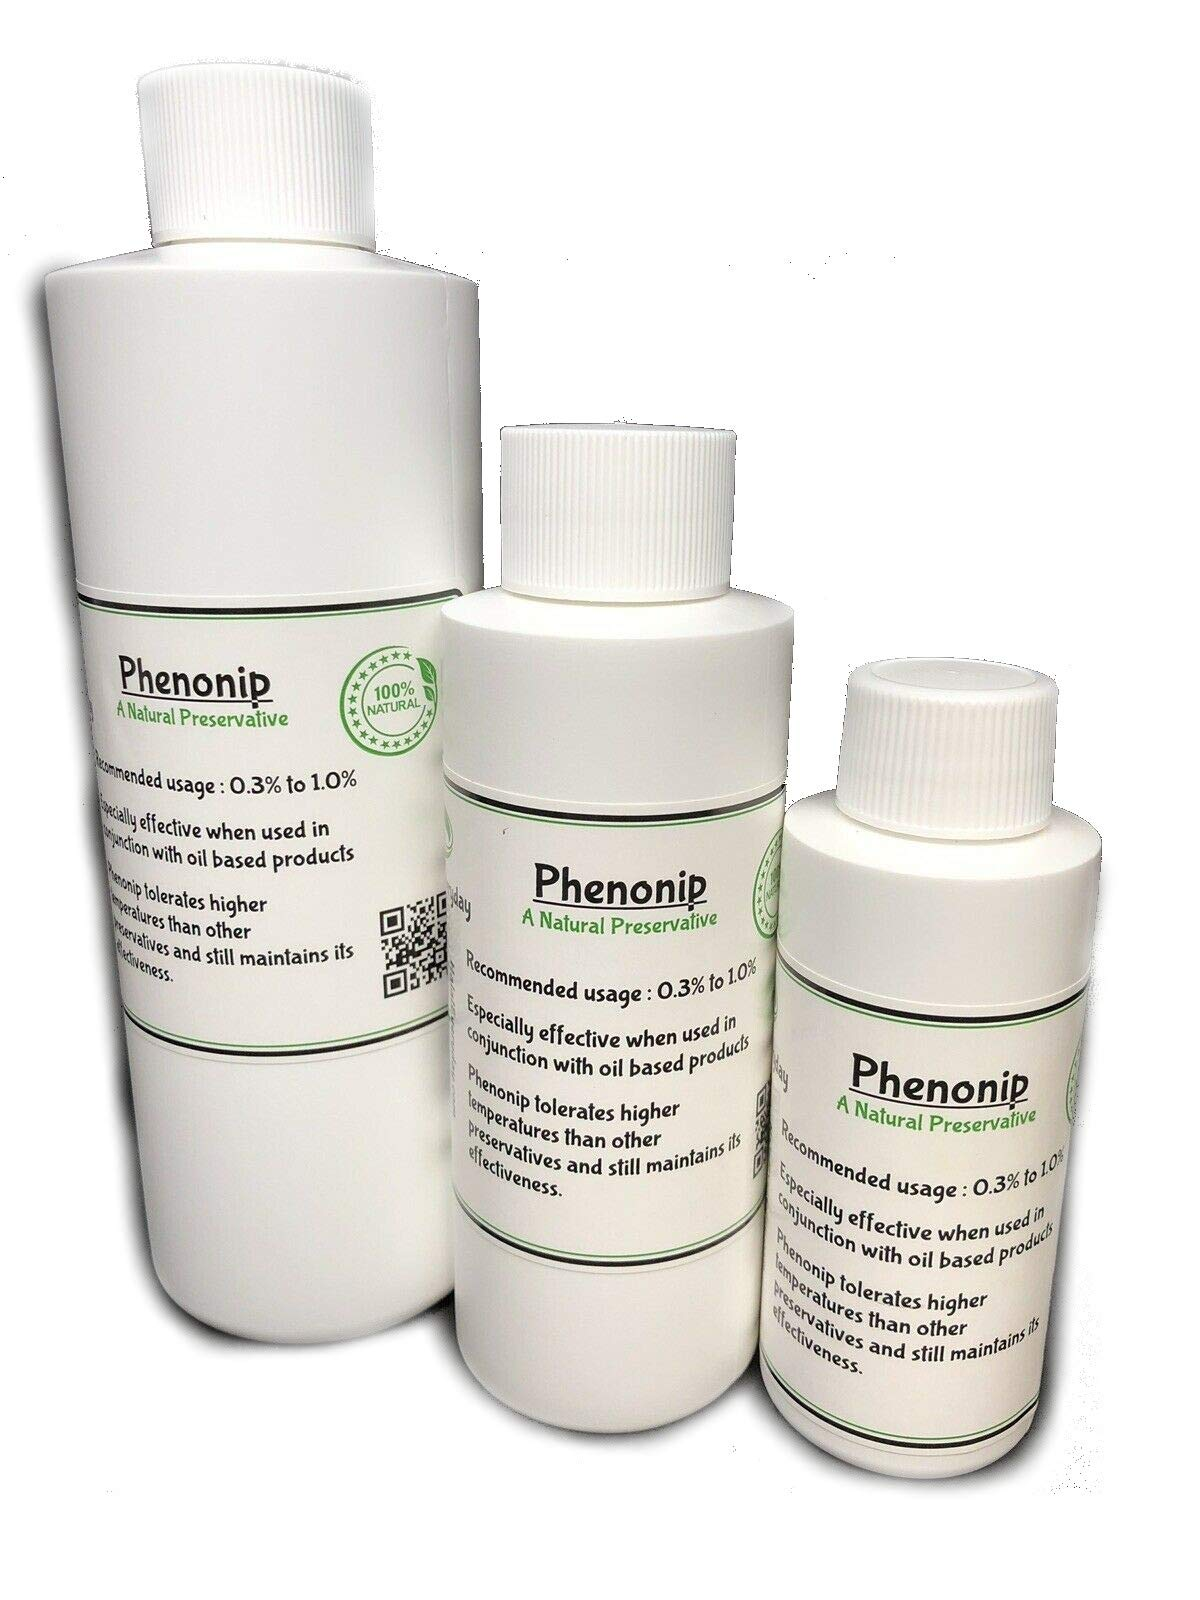 Phenonip - Amazing Preservative Used for Lotion, Cream, Lip Balm or Body Butter 4 Oz